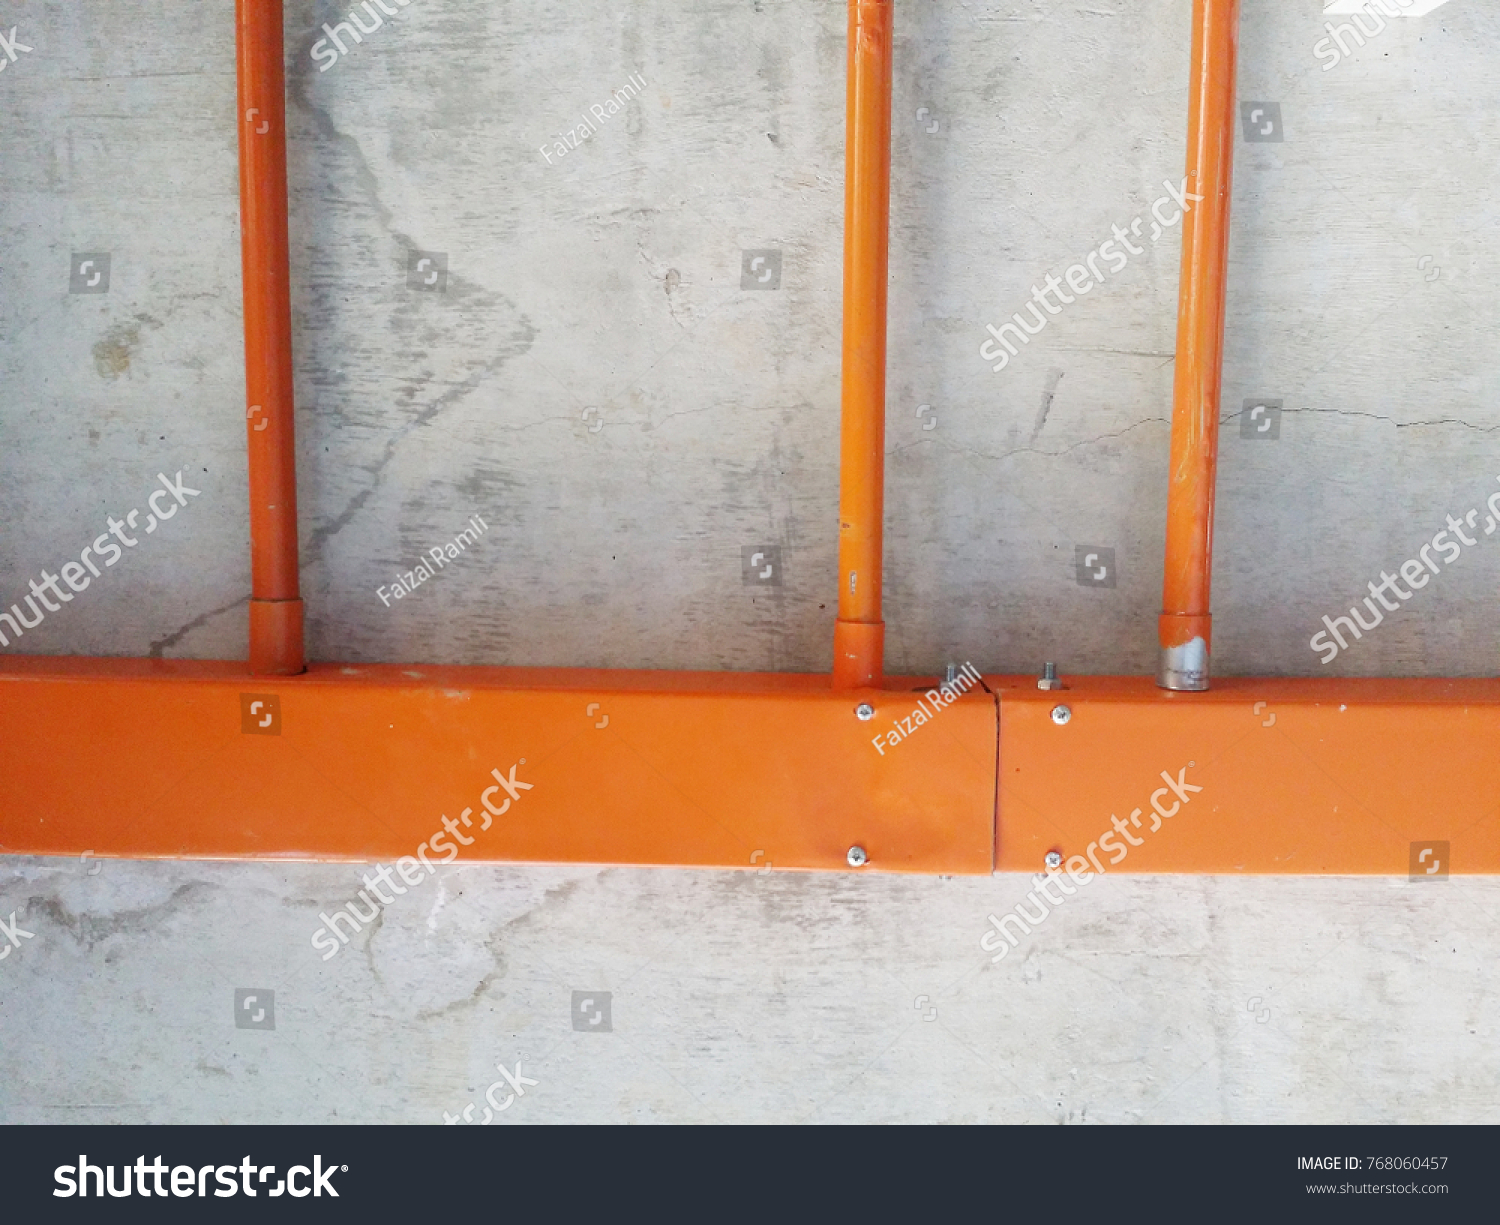 Electrical Metal Trunking Galvanized Conduit Pipe Industrial Stock Image 768060457